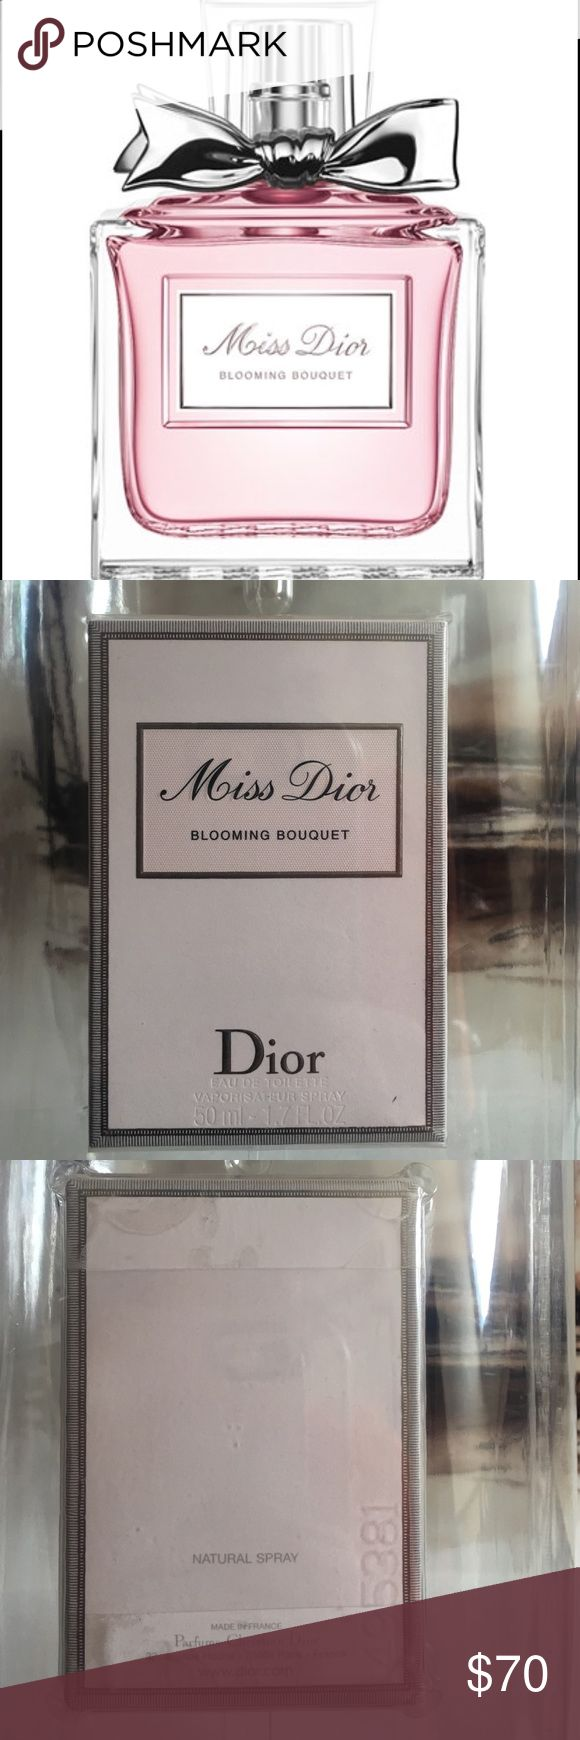 NWT 💯Authentic 🎀Miss Dior Perfume🎀 💯Authentic 1.7 oz Miss Dior Perfume by Christian Dior. Brand New still in original packaging with plastic protective cover. Great Christmas gift. Retails in the stores for $80+ tax ▶️Price Firm 🚫Trade Christian Dior Other